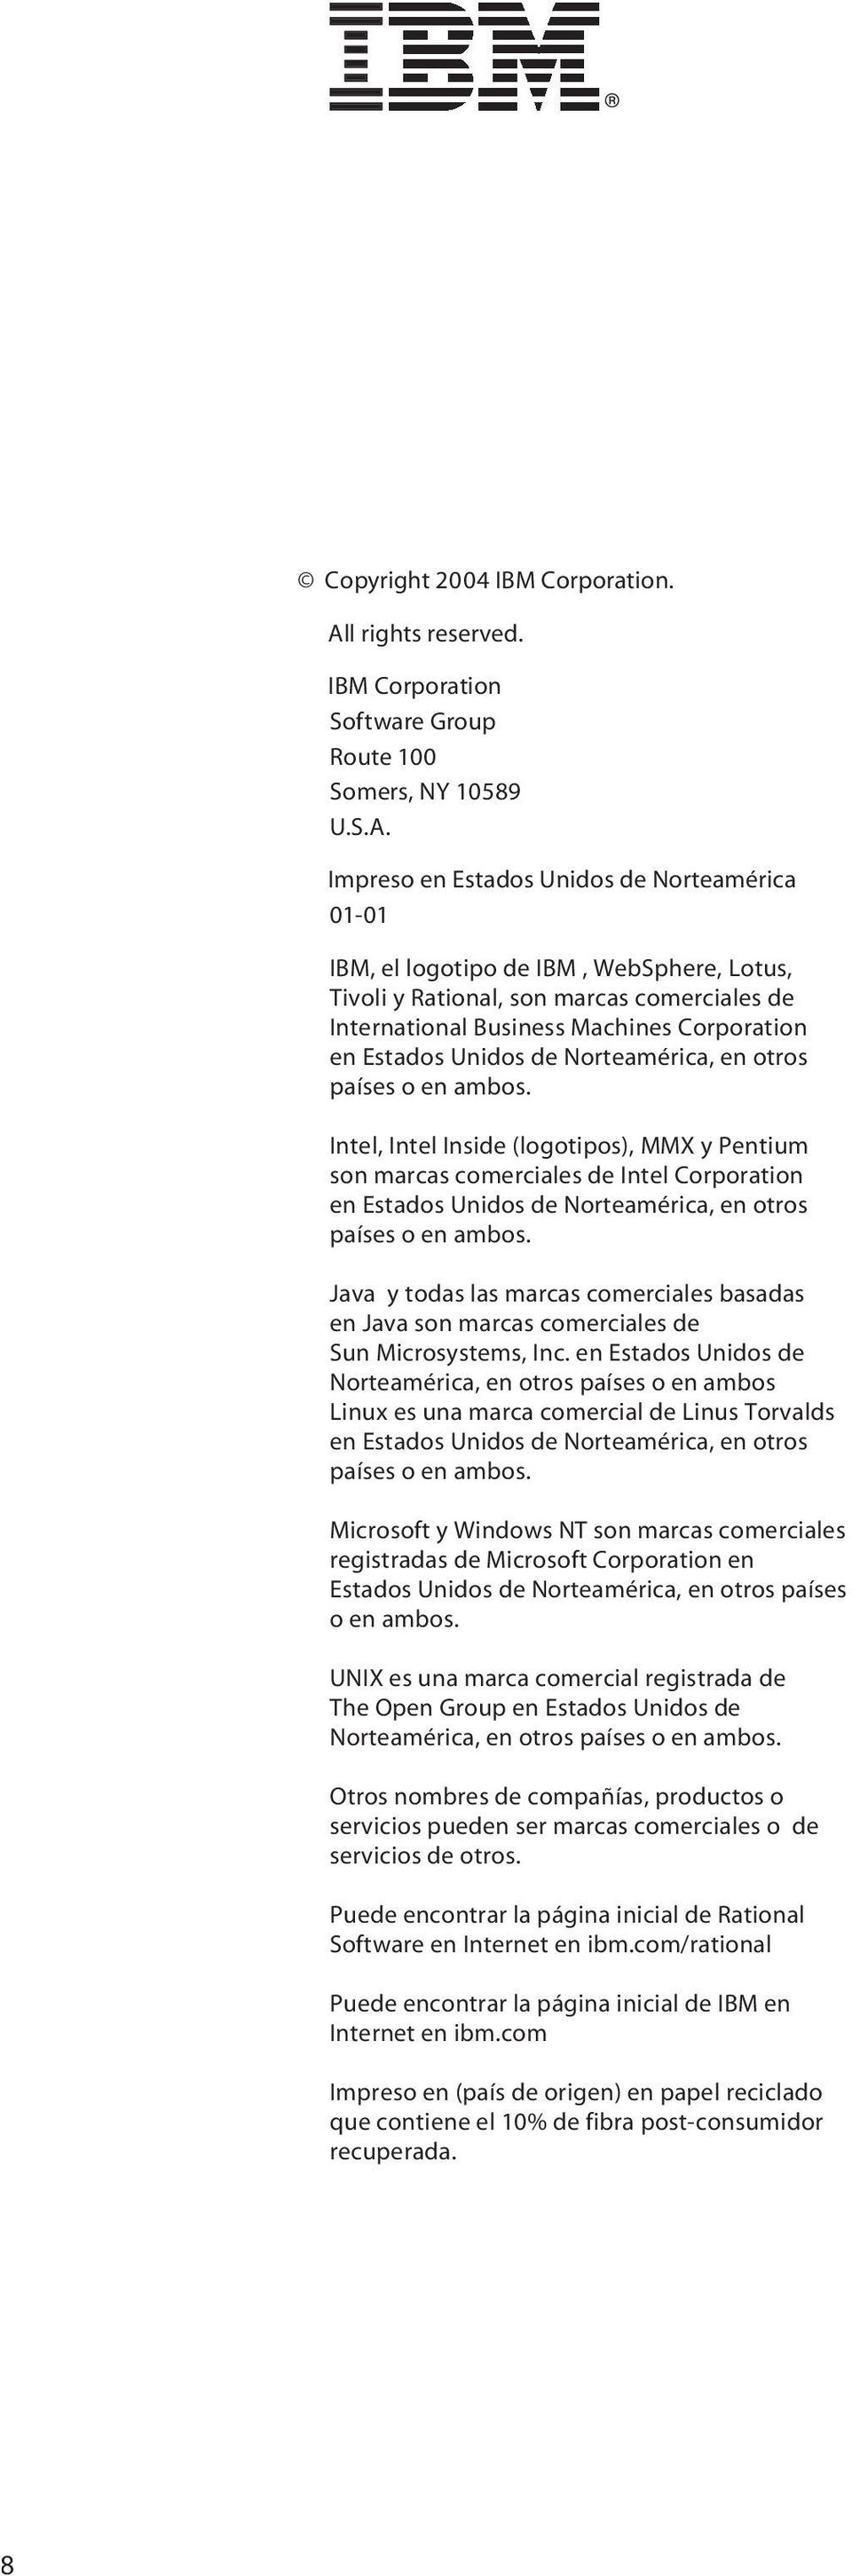 Impreso en Estados Unidos de Norteamérica 01-01 IBM, el logotipo de IBM, WebSphere, Lotus, Tivoli y Rational, son marcas comerciales de International Business Machines Corporation en Estados Unidos